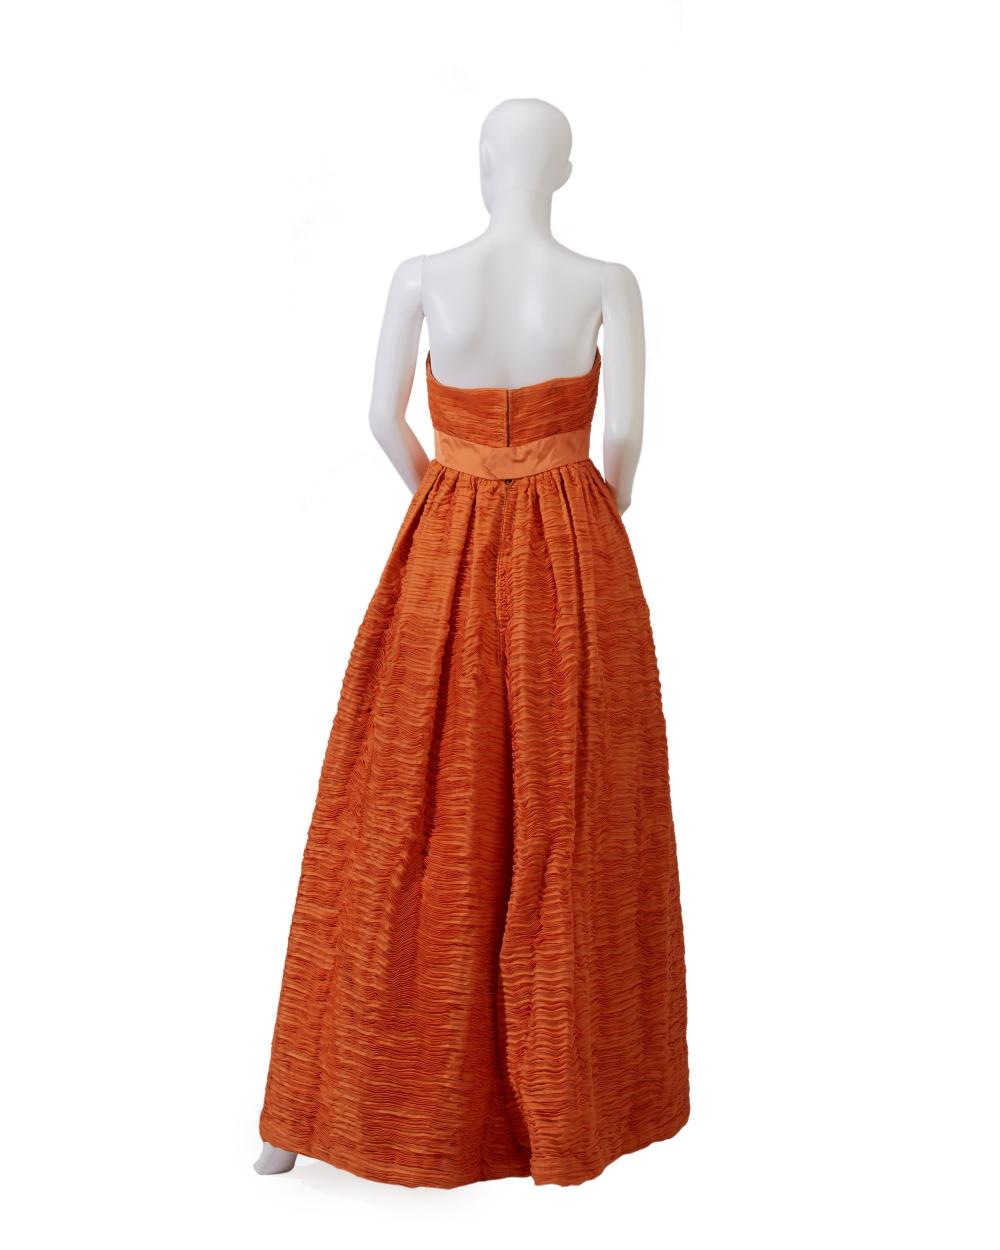 A Sybil Connolly Irish linen evening gown